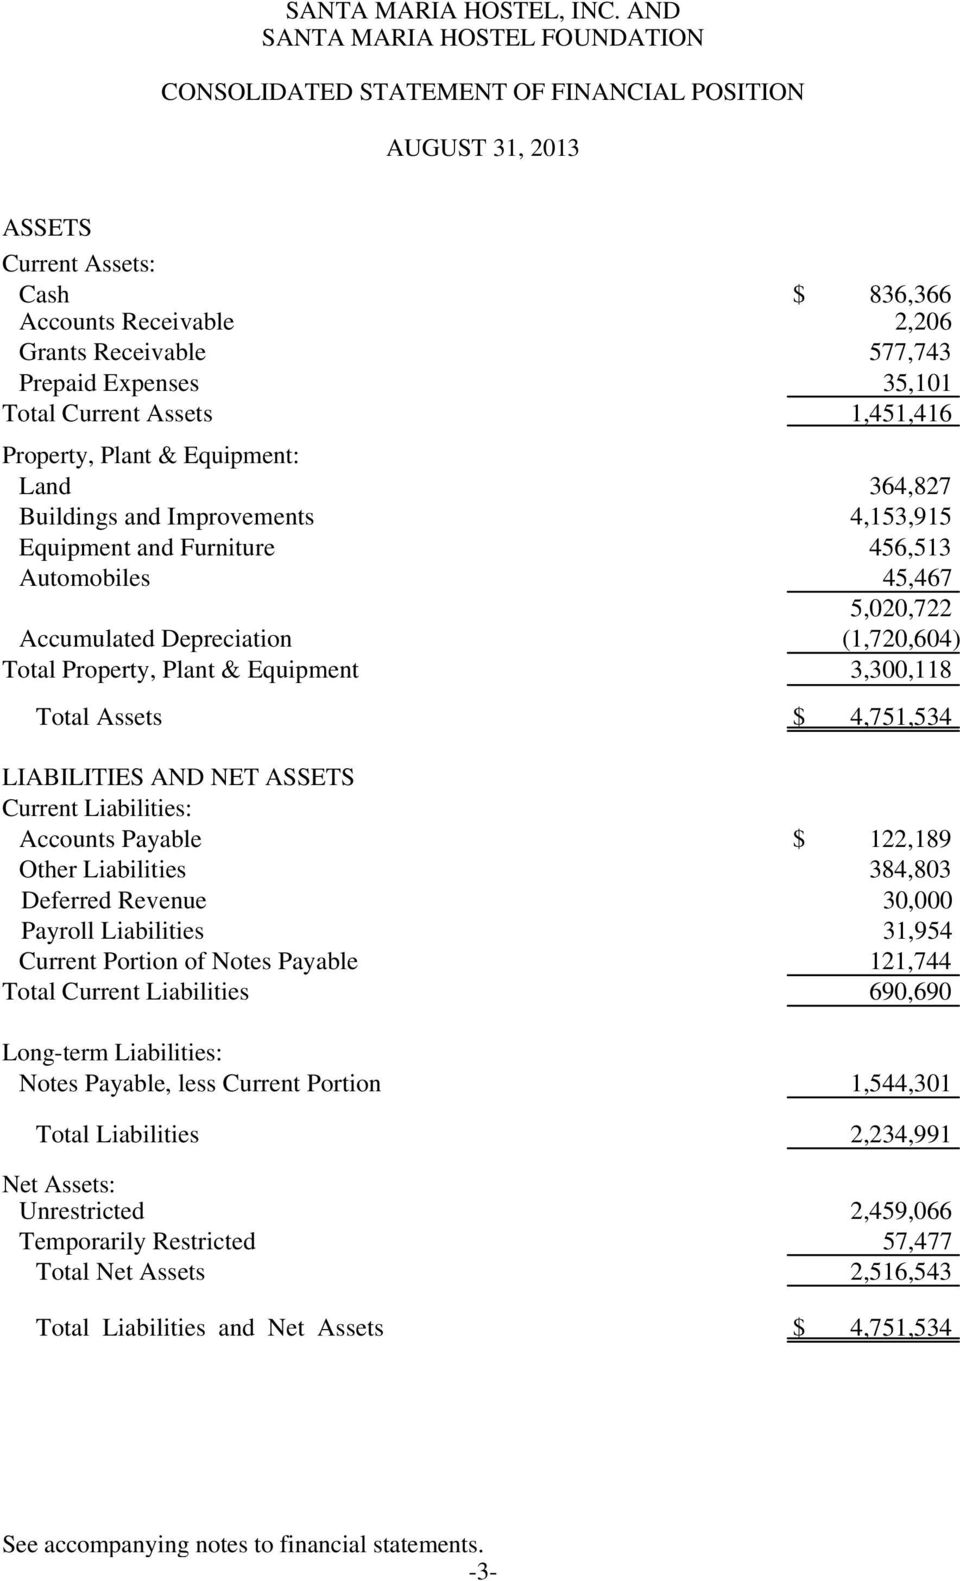 Expenses 35,101 Total Current Assets 1,451,416 Property, Plant & Equipment: Land 364,827 Buildings and Improvements 4,153,915 Equipment and Furniture 456,513 Automobiles 45,467 5,020,722 Accumulated